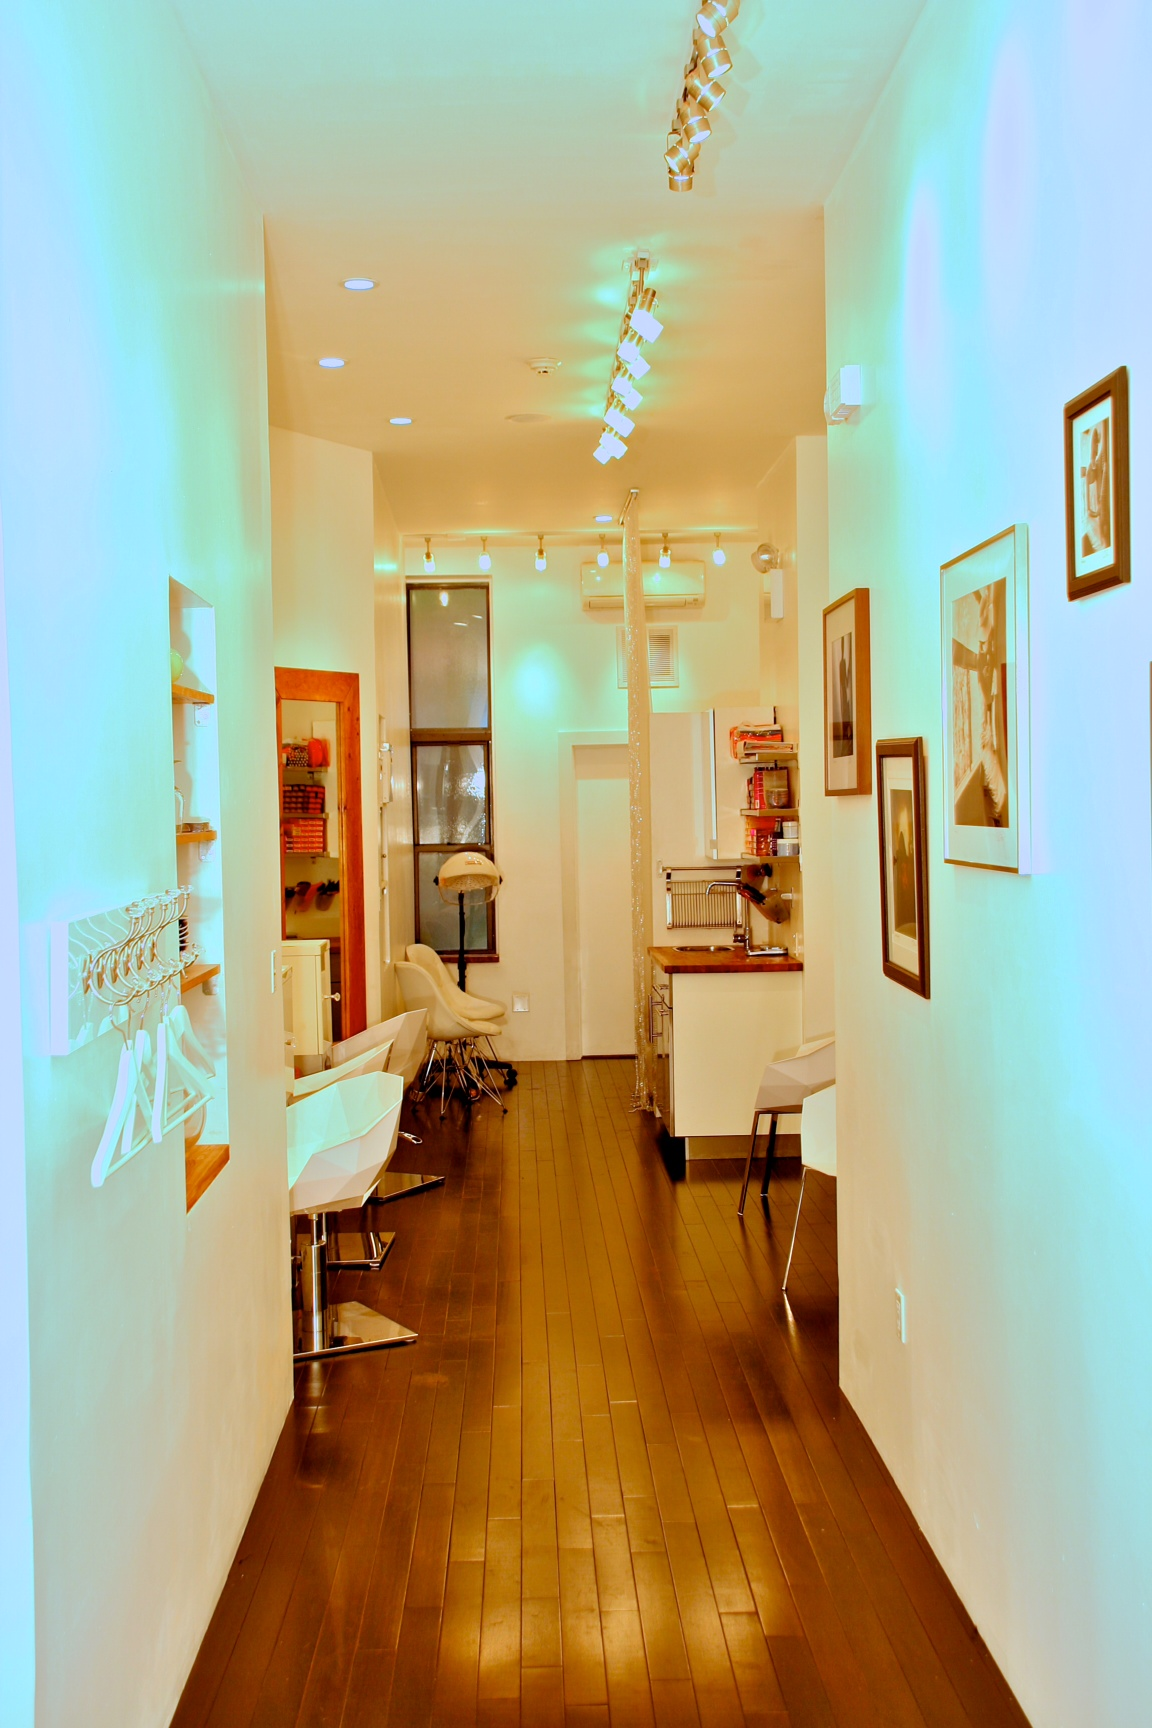 Upscale Salon : New Breed Of Upscale Salons Are Transforming The Images Of Harlem ...